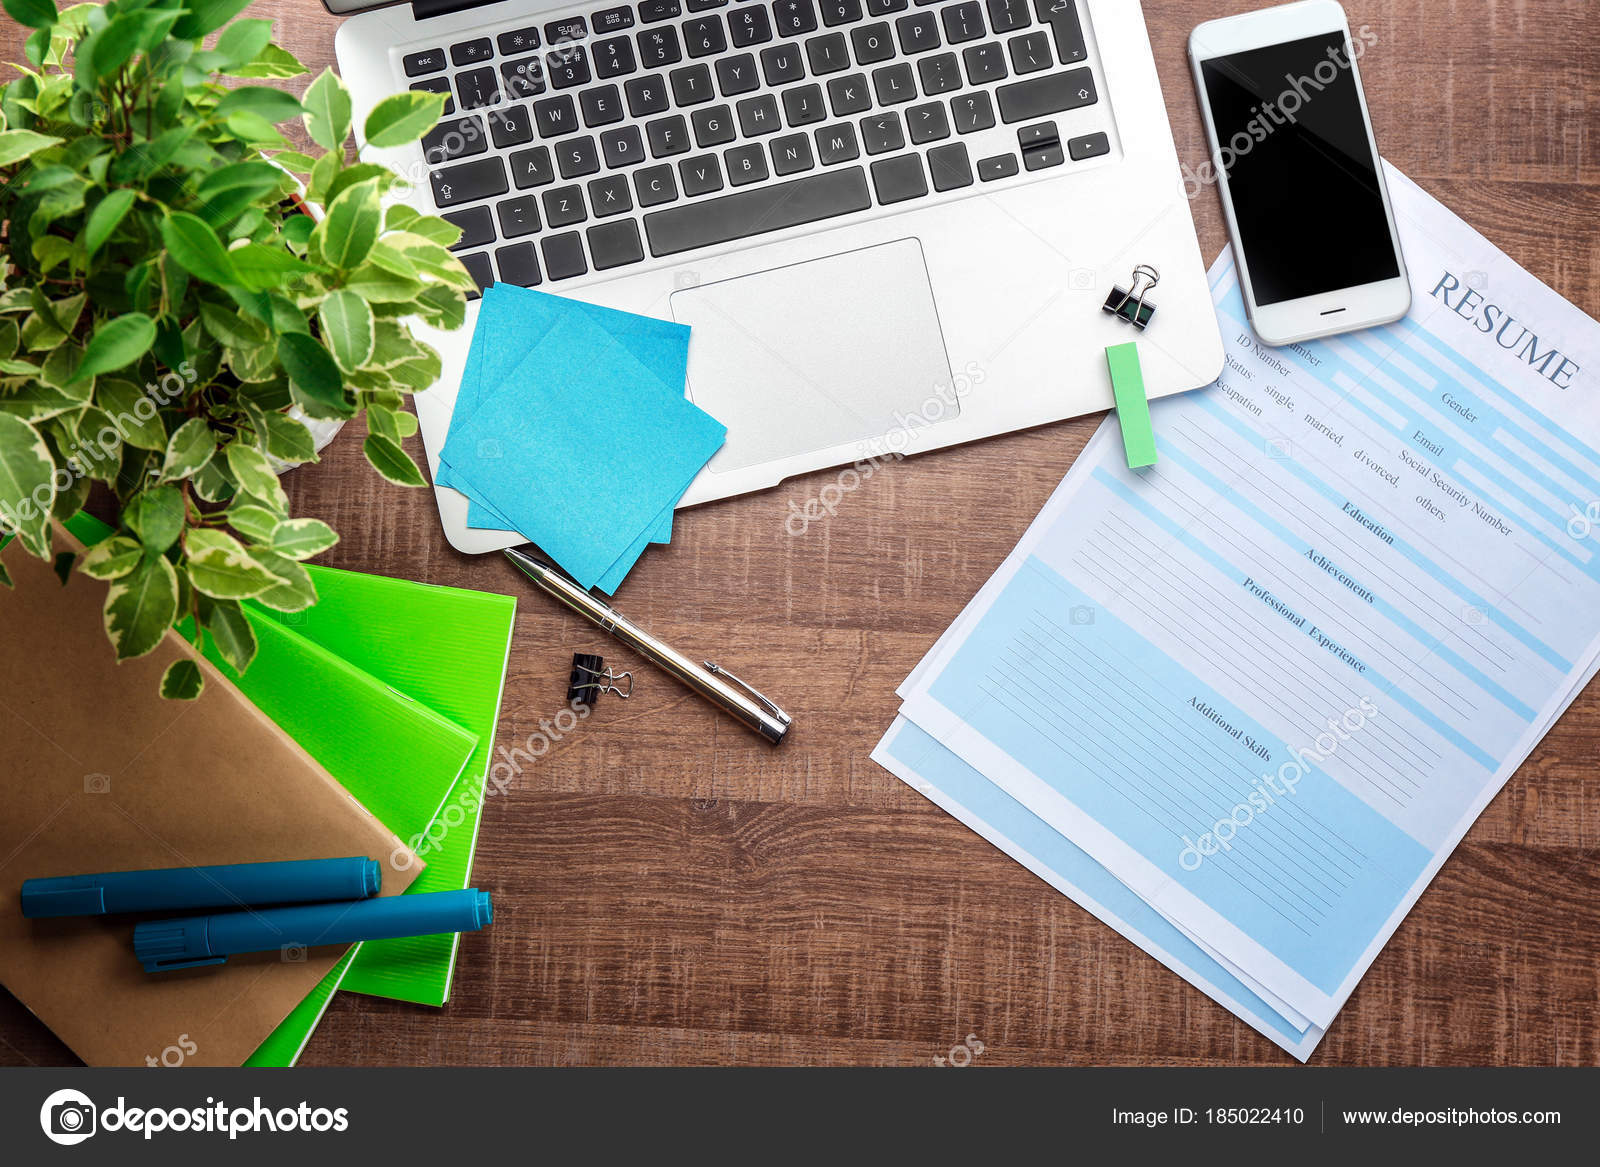 resume forms laptop office stationery table job interview concept